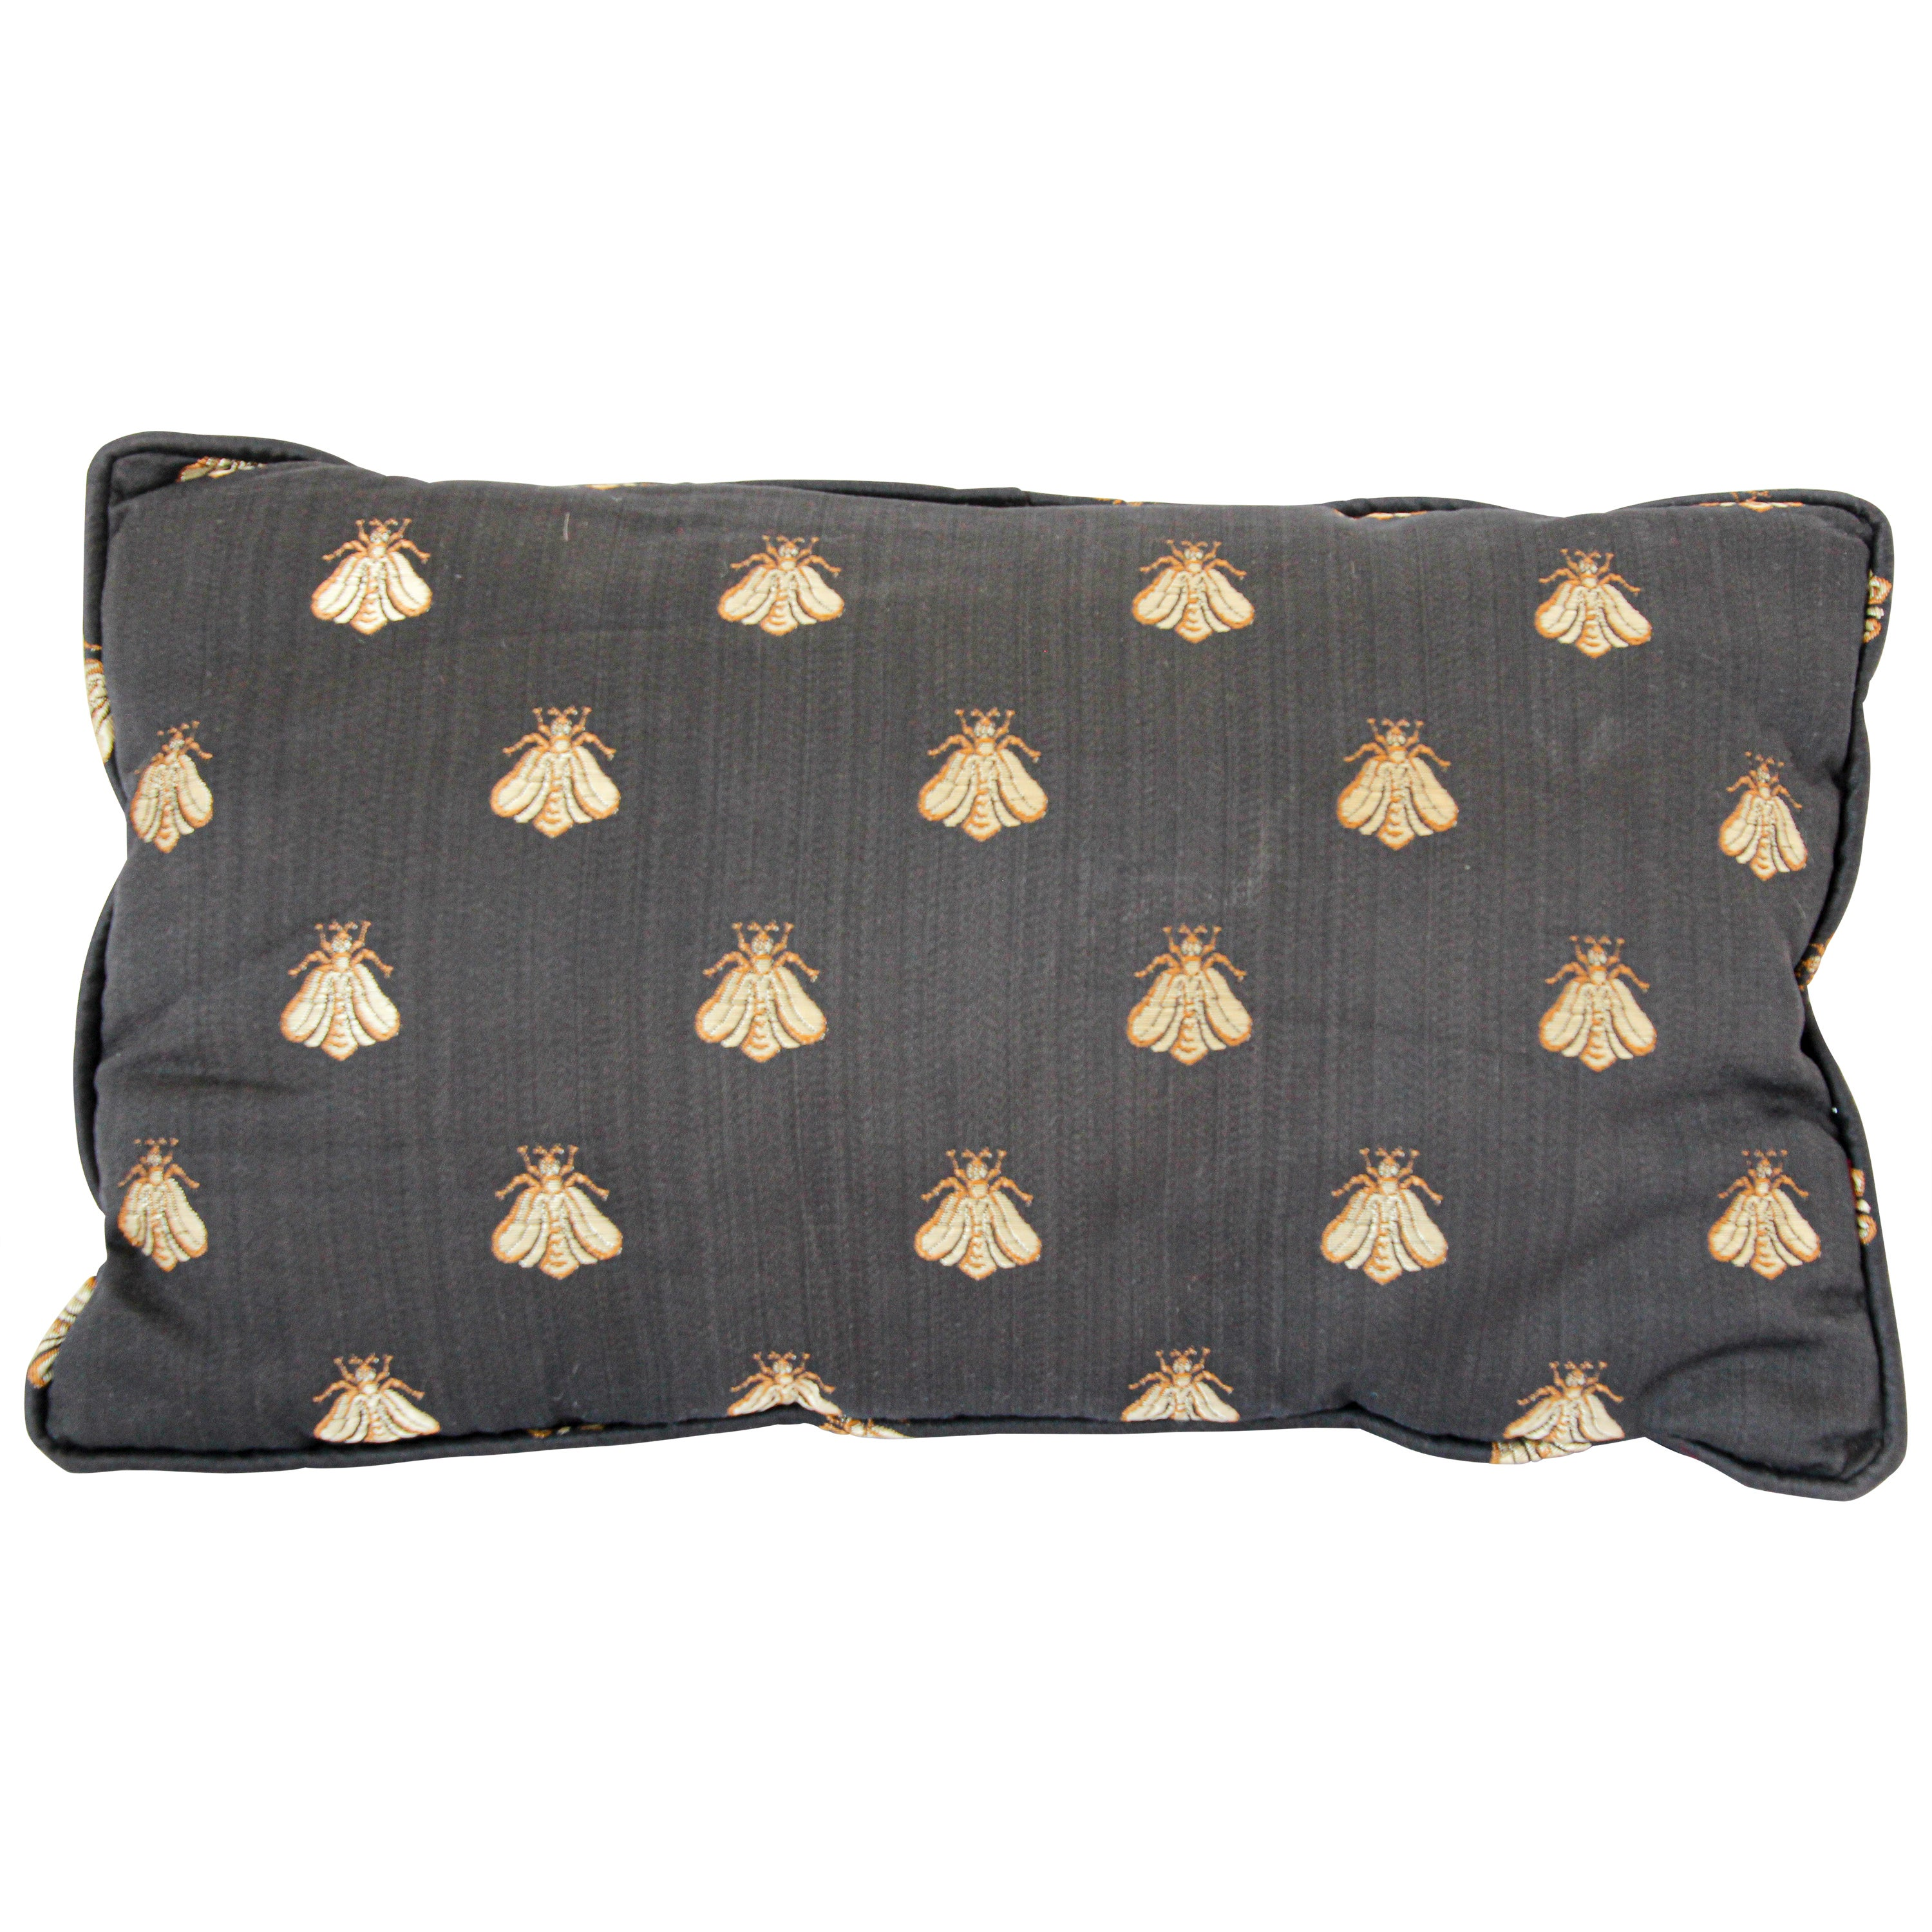 Throw Decorative Black and Gold Silk Accent Pillow